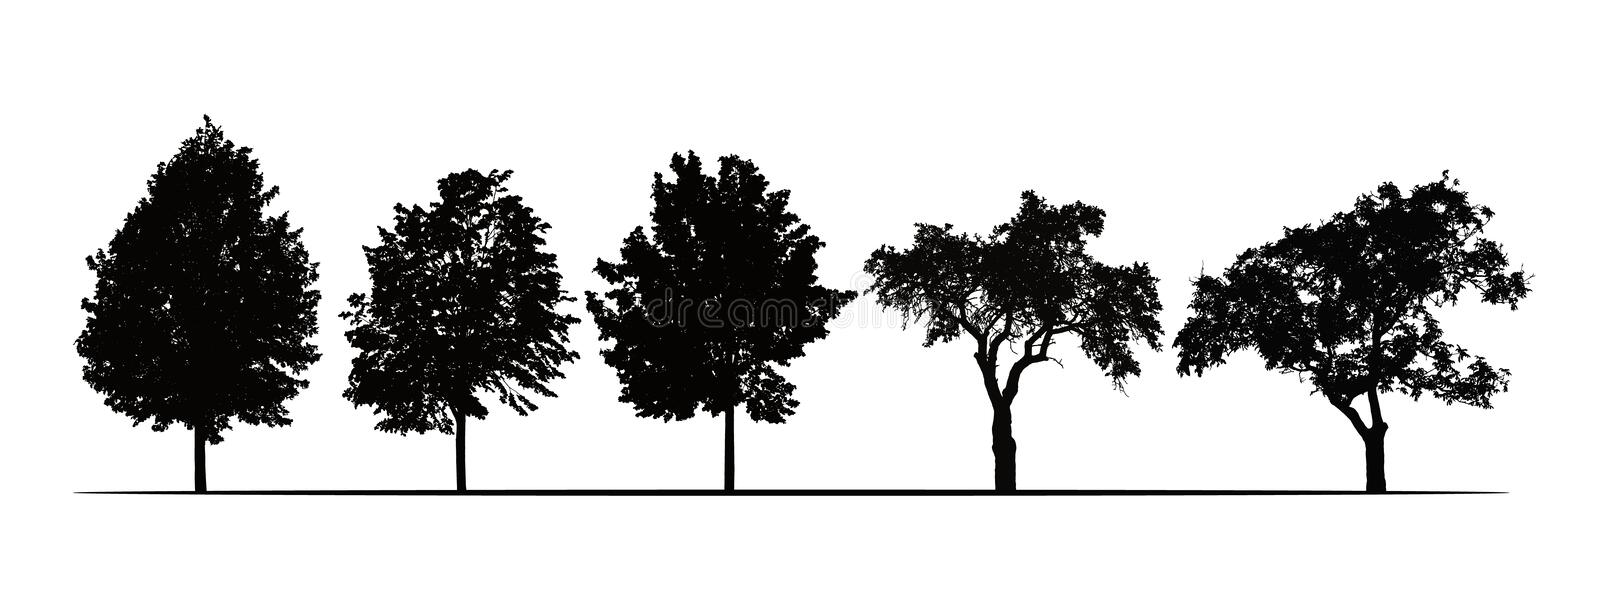 Set realistic illustrations of silhouettes of fruit trees - linden, apple and plum - isolated on white background, vector stock illustration